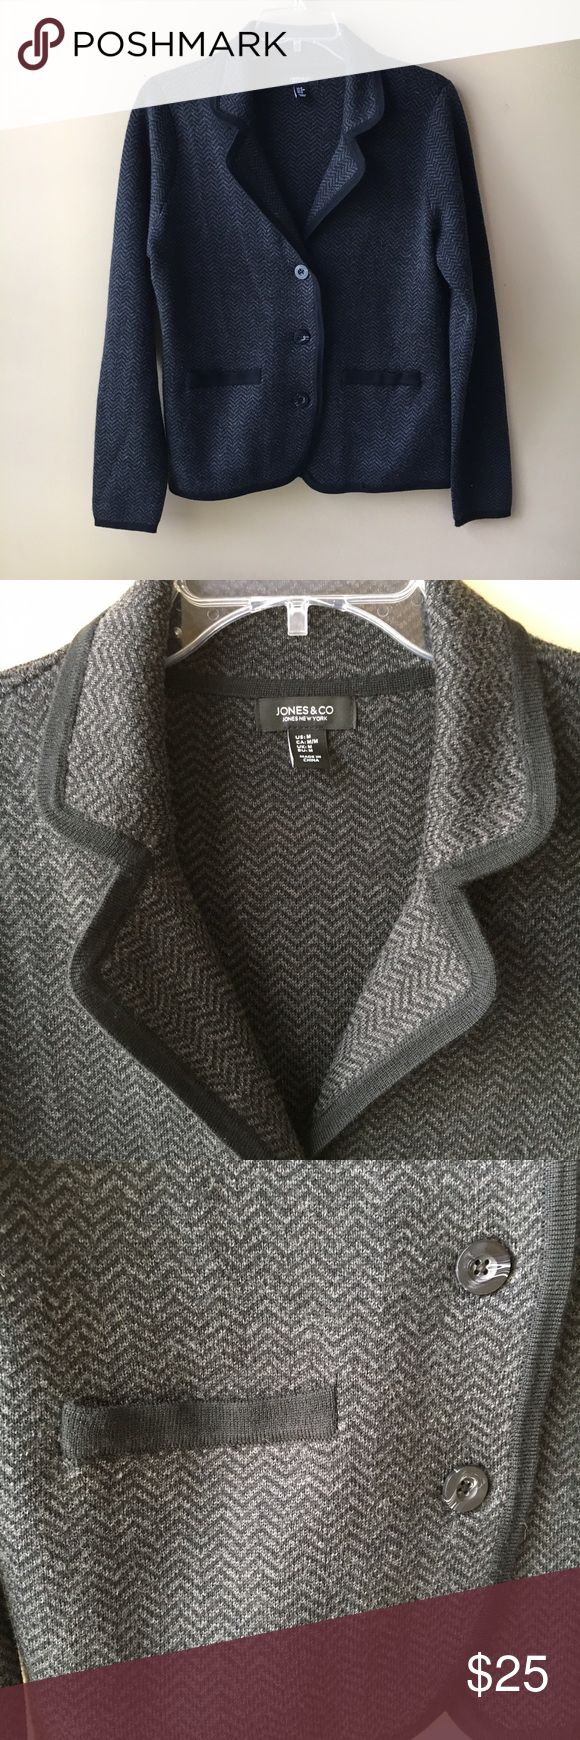 Jones & Co Wool Blend Sweater/Blazer sz M This fine merino wool blend sweater/blazer is super soft and can be casual or dressy. Worn one time. Excellent condition! Size M Jones New York Jackets & Coats Blazers